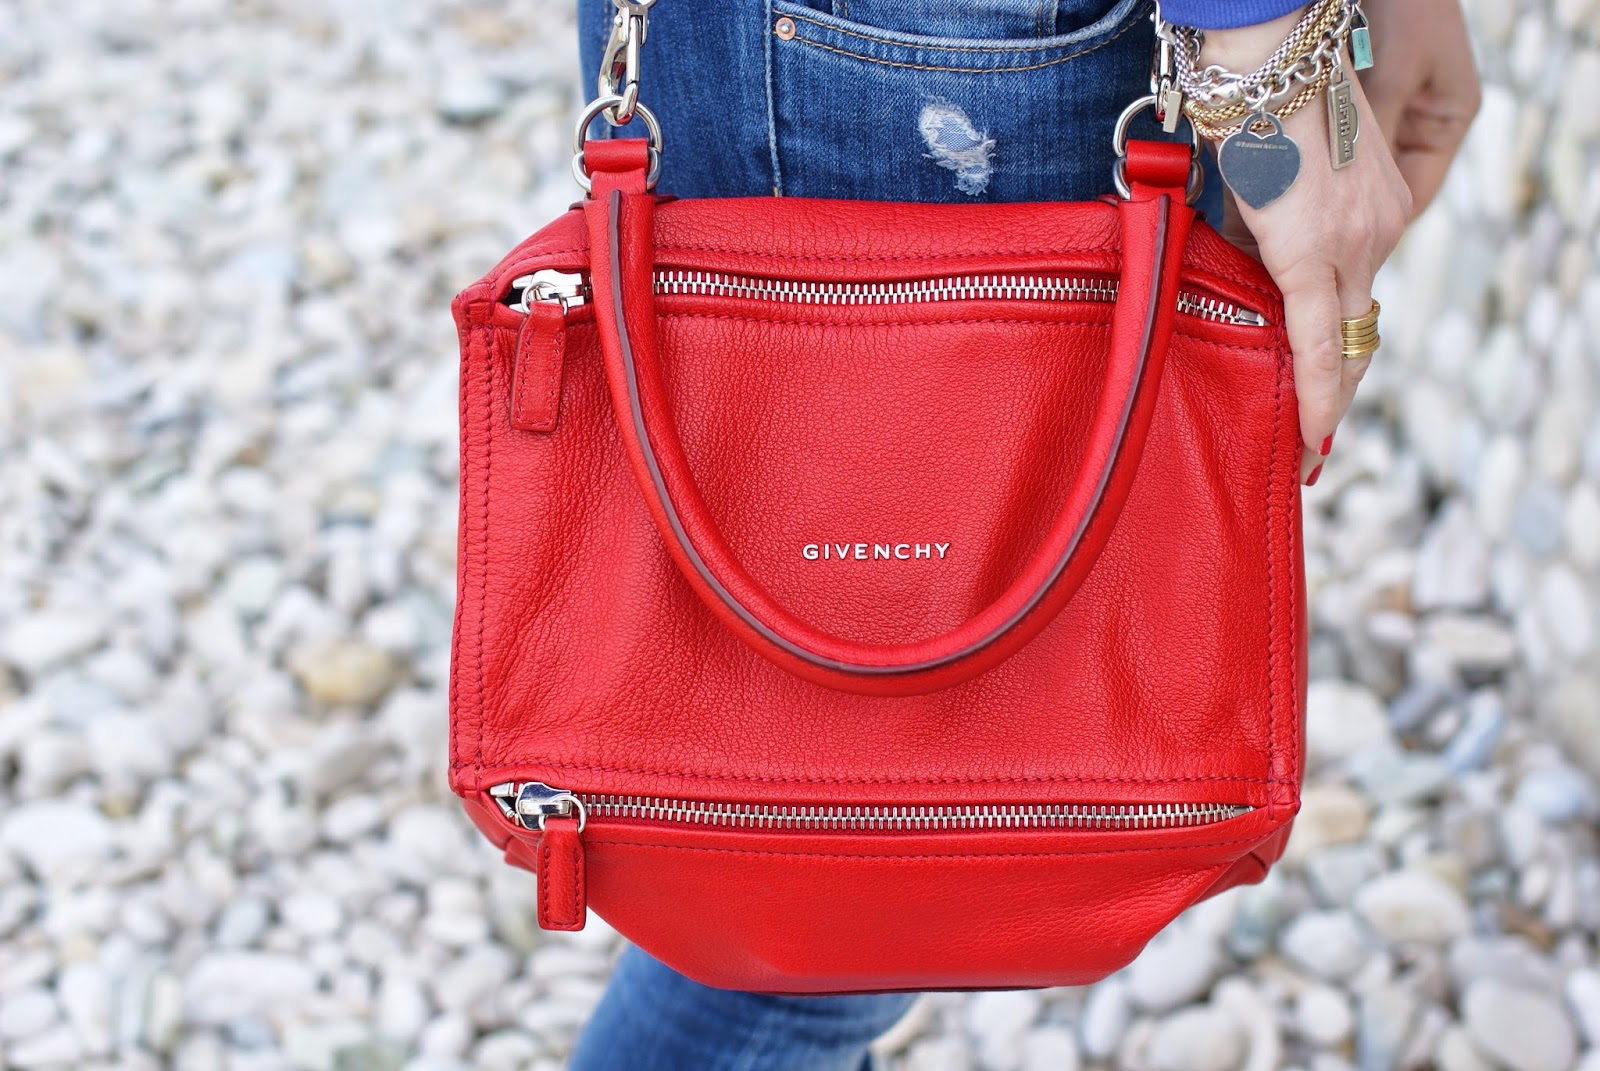 Givenchy pandora bag small in red, red givenchy pandora bag, Fashion and Cookies fashion blog, fashion blogger style